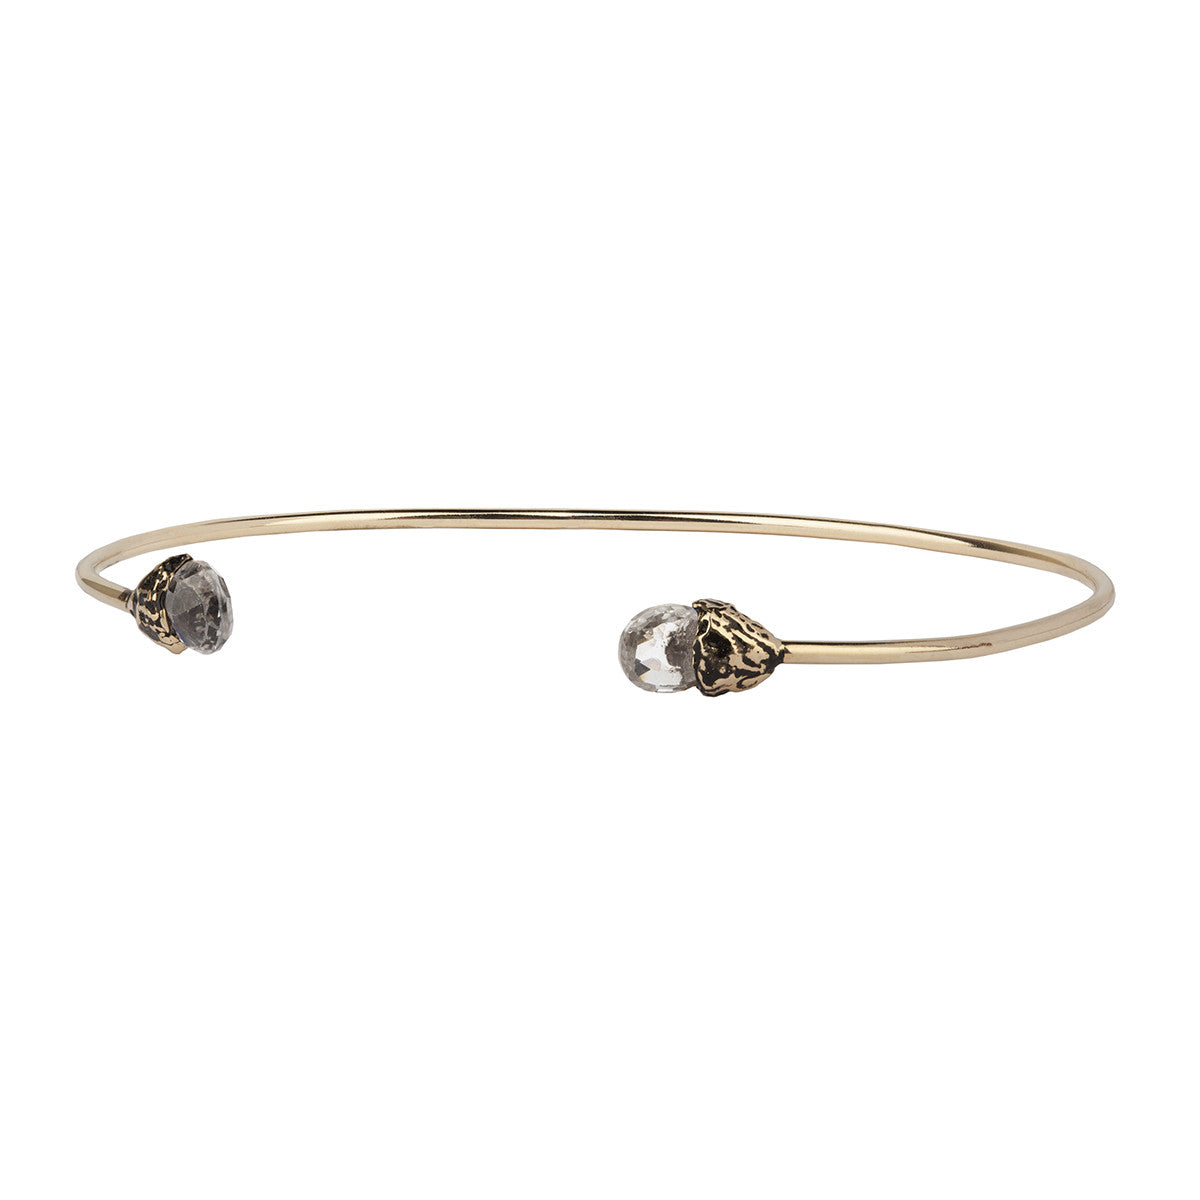 Serenity 14K Gold Capped Attraction Charm Open Bangle